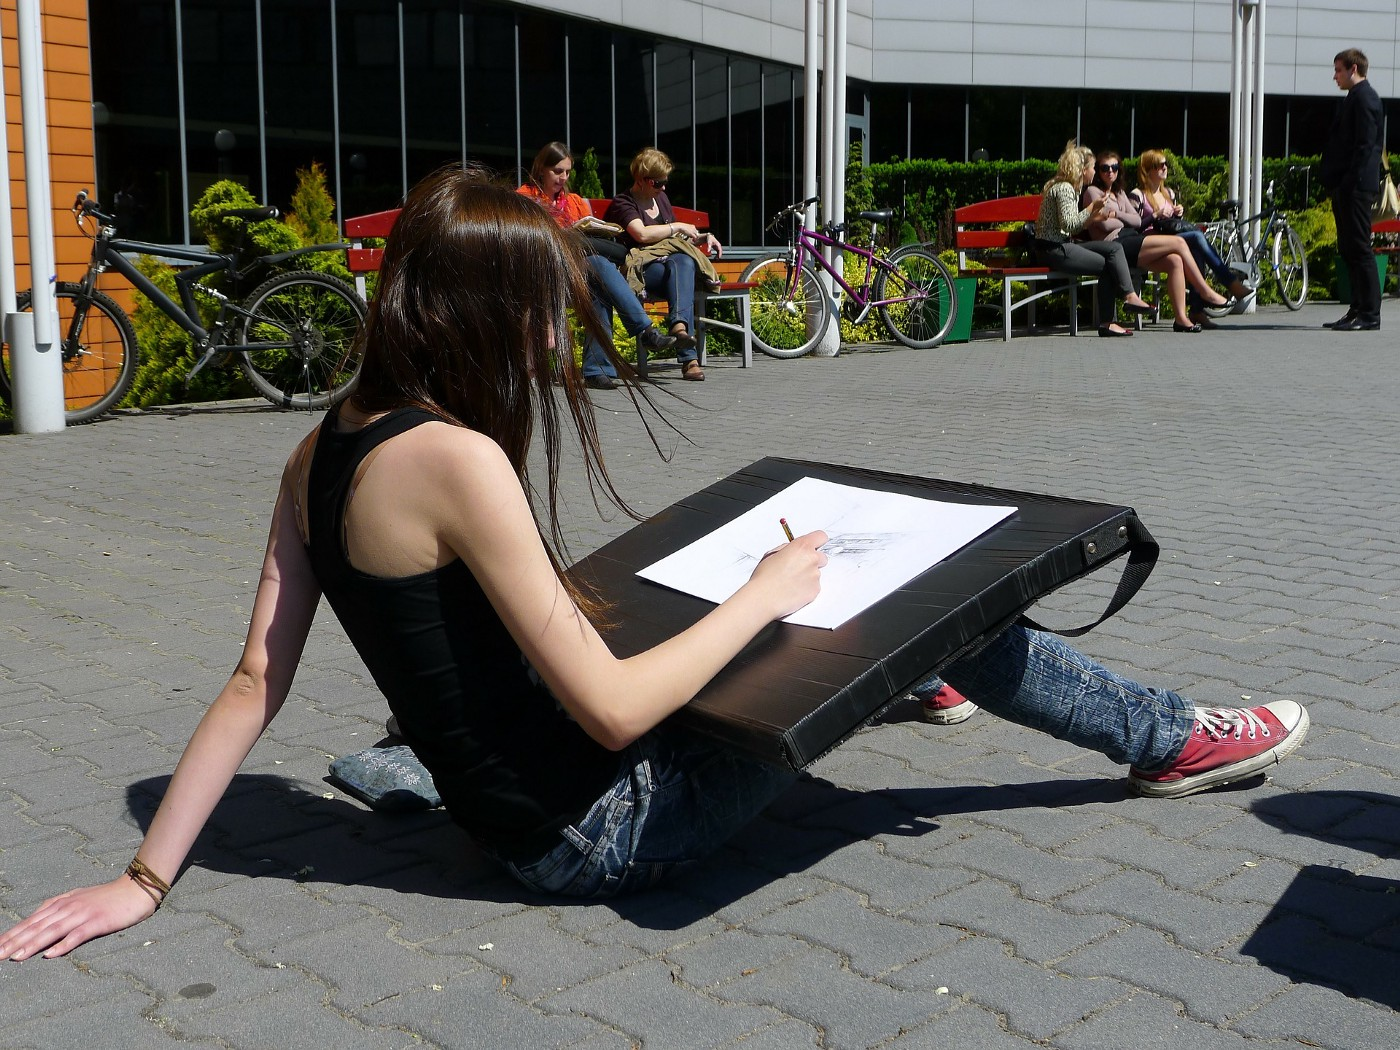 A young woman sketches outdoors, sitting on the ground. She is wearing a black tank top, jeans, and red sneakers